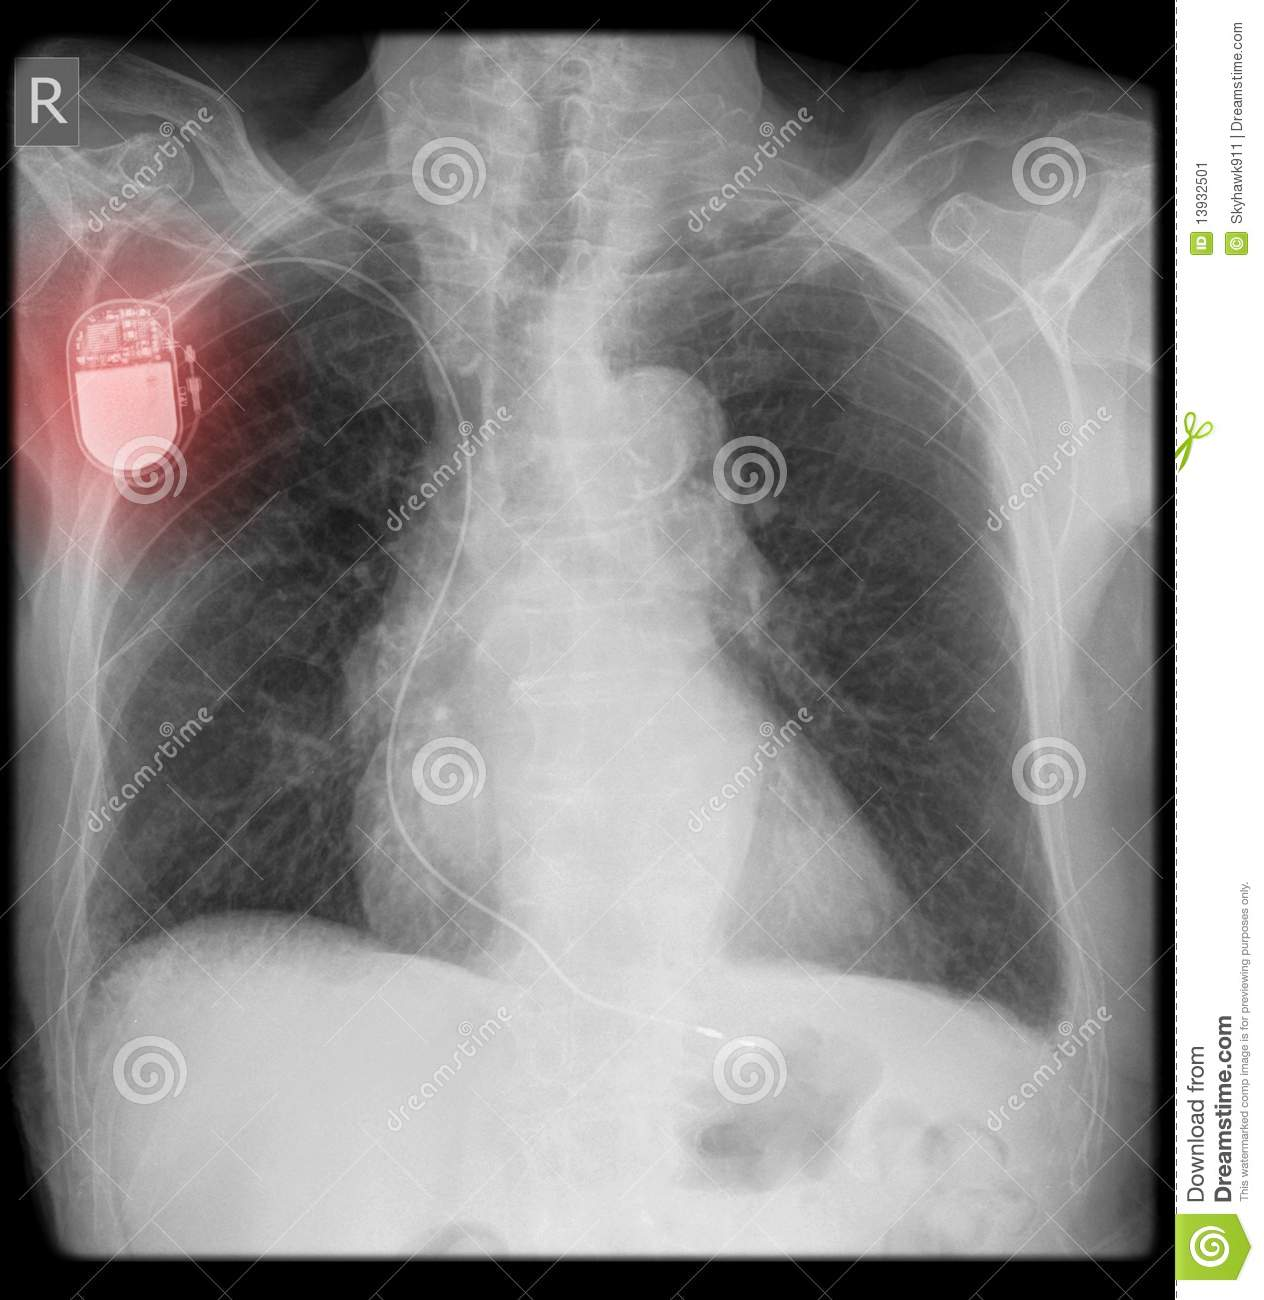 Pacemaker on x-ray with wire